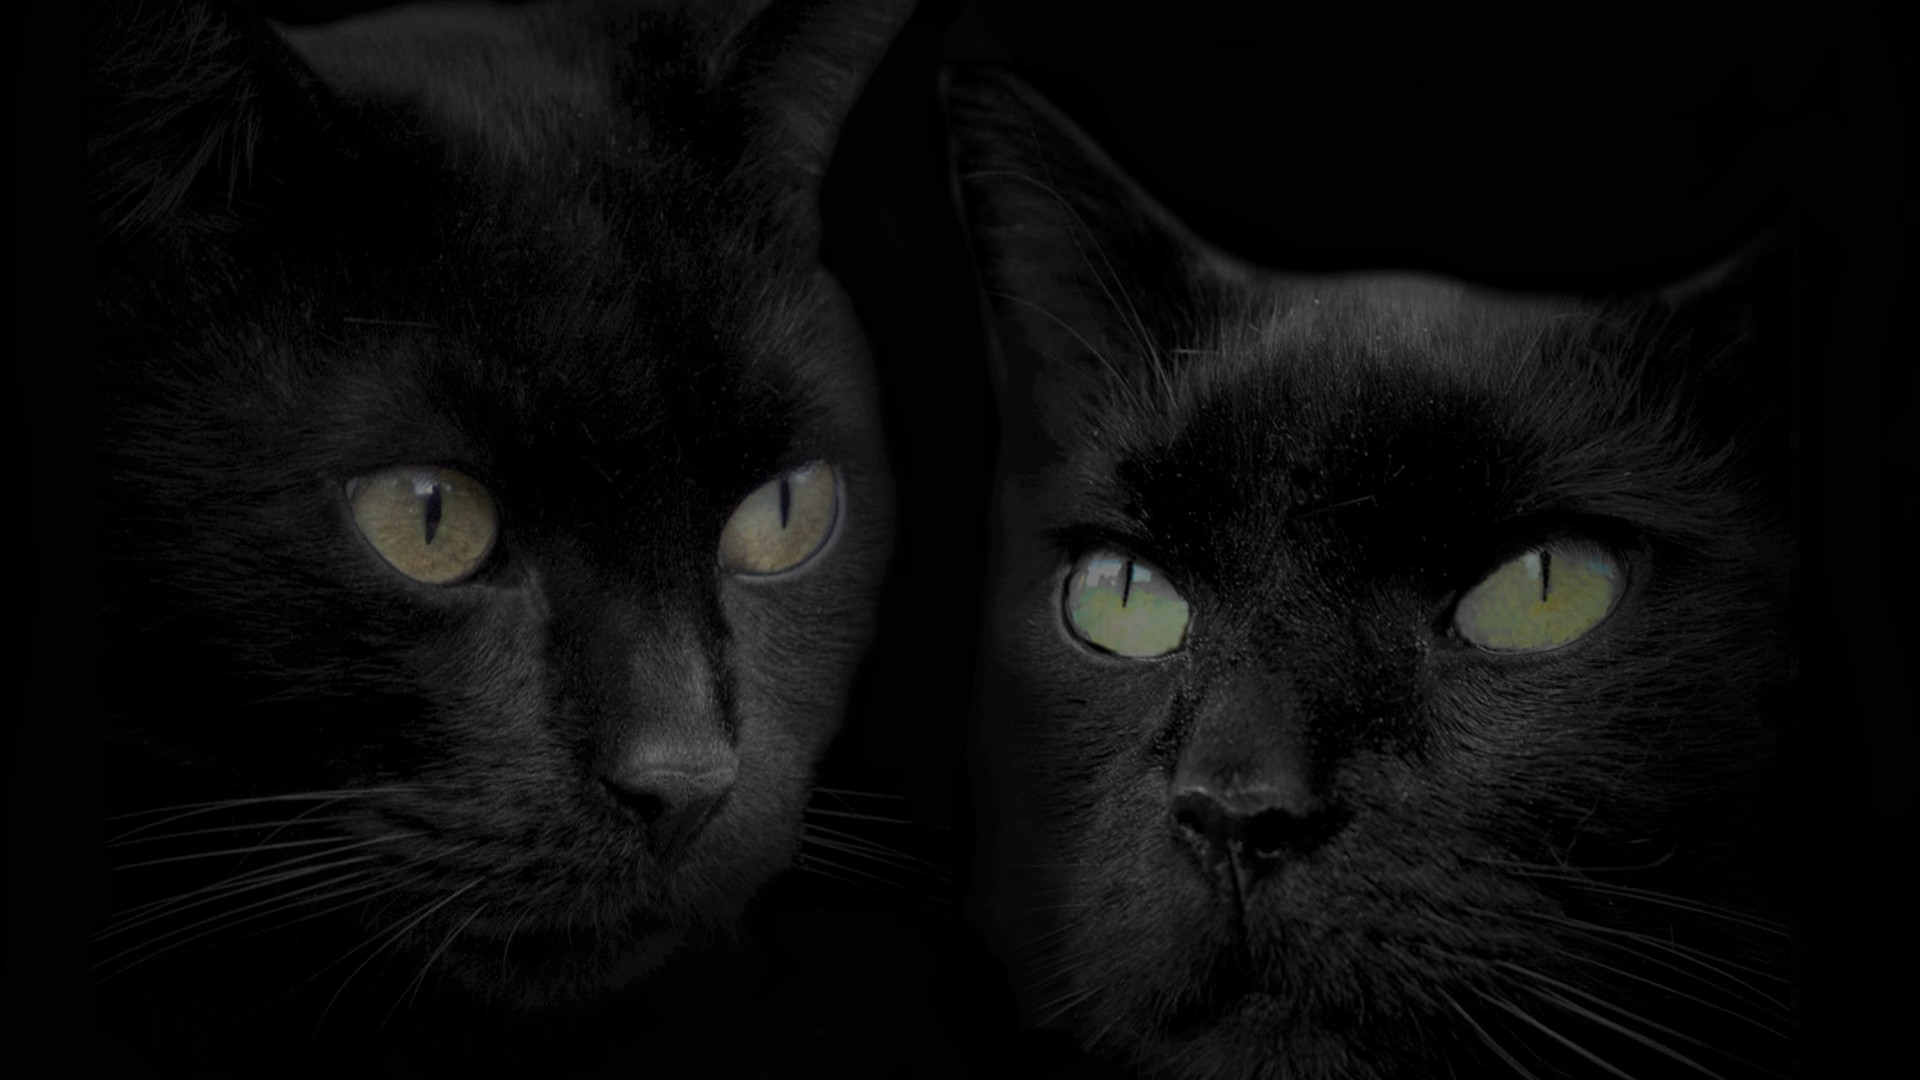 Cats Images Beautiful Black Cats Hd Wallpaper And Background Photos